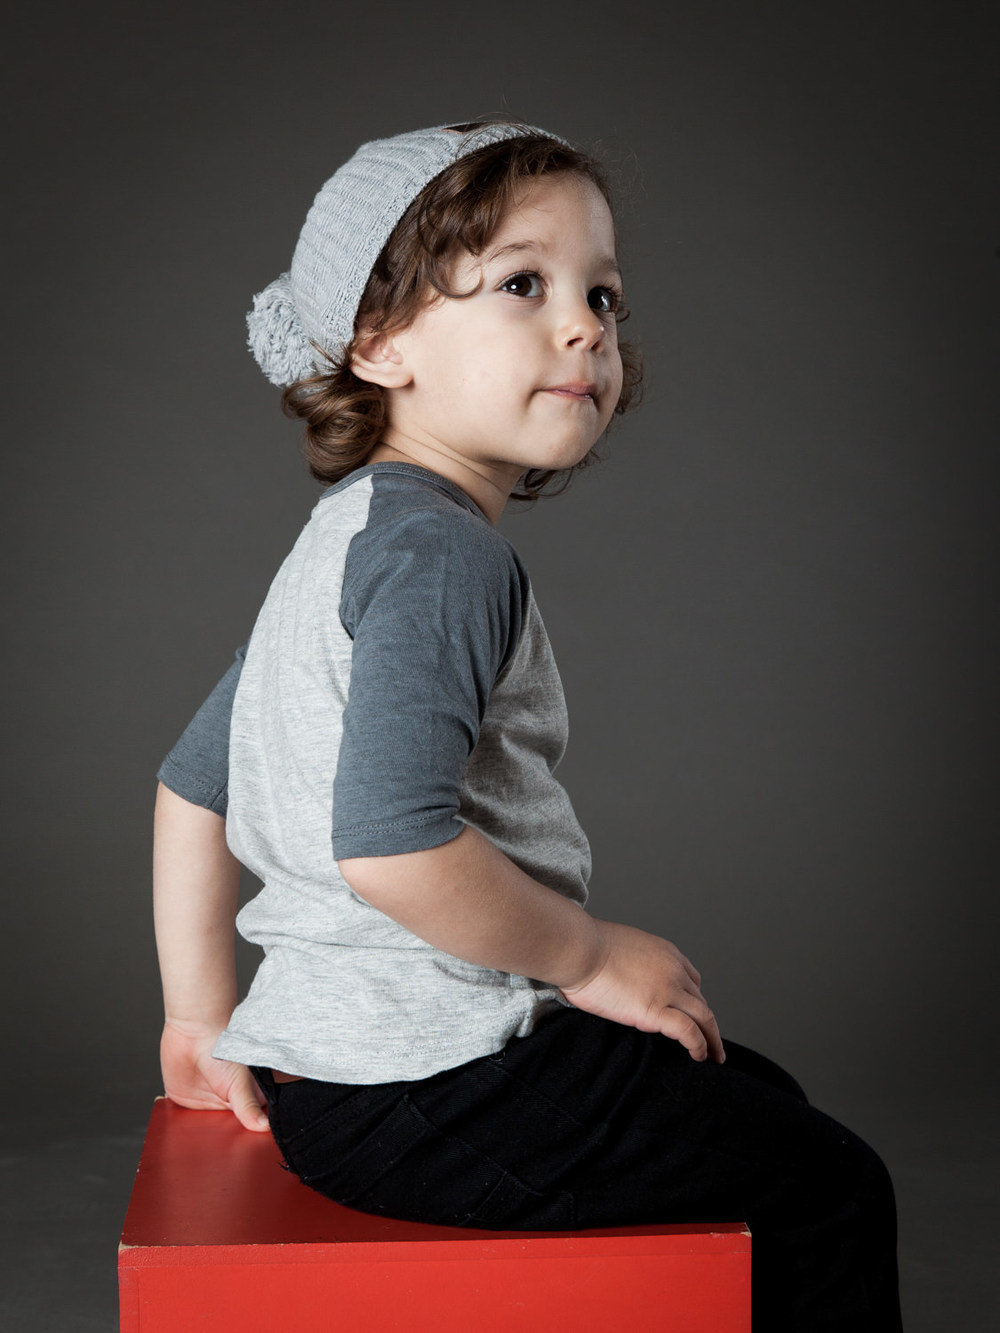 tim gerges capetown photographer kids fashion-1836.jpg